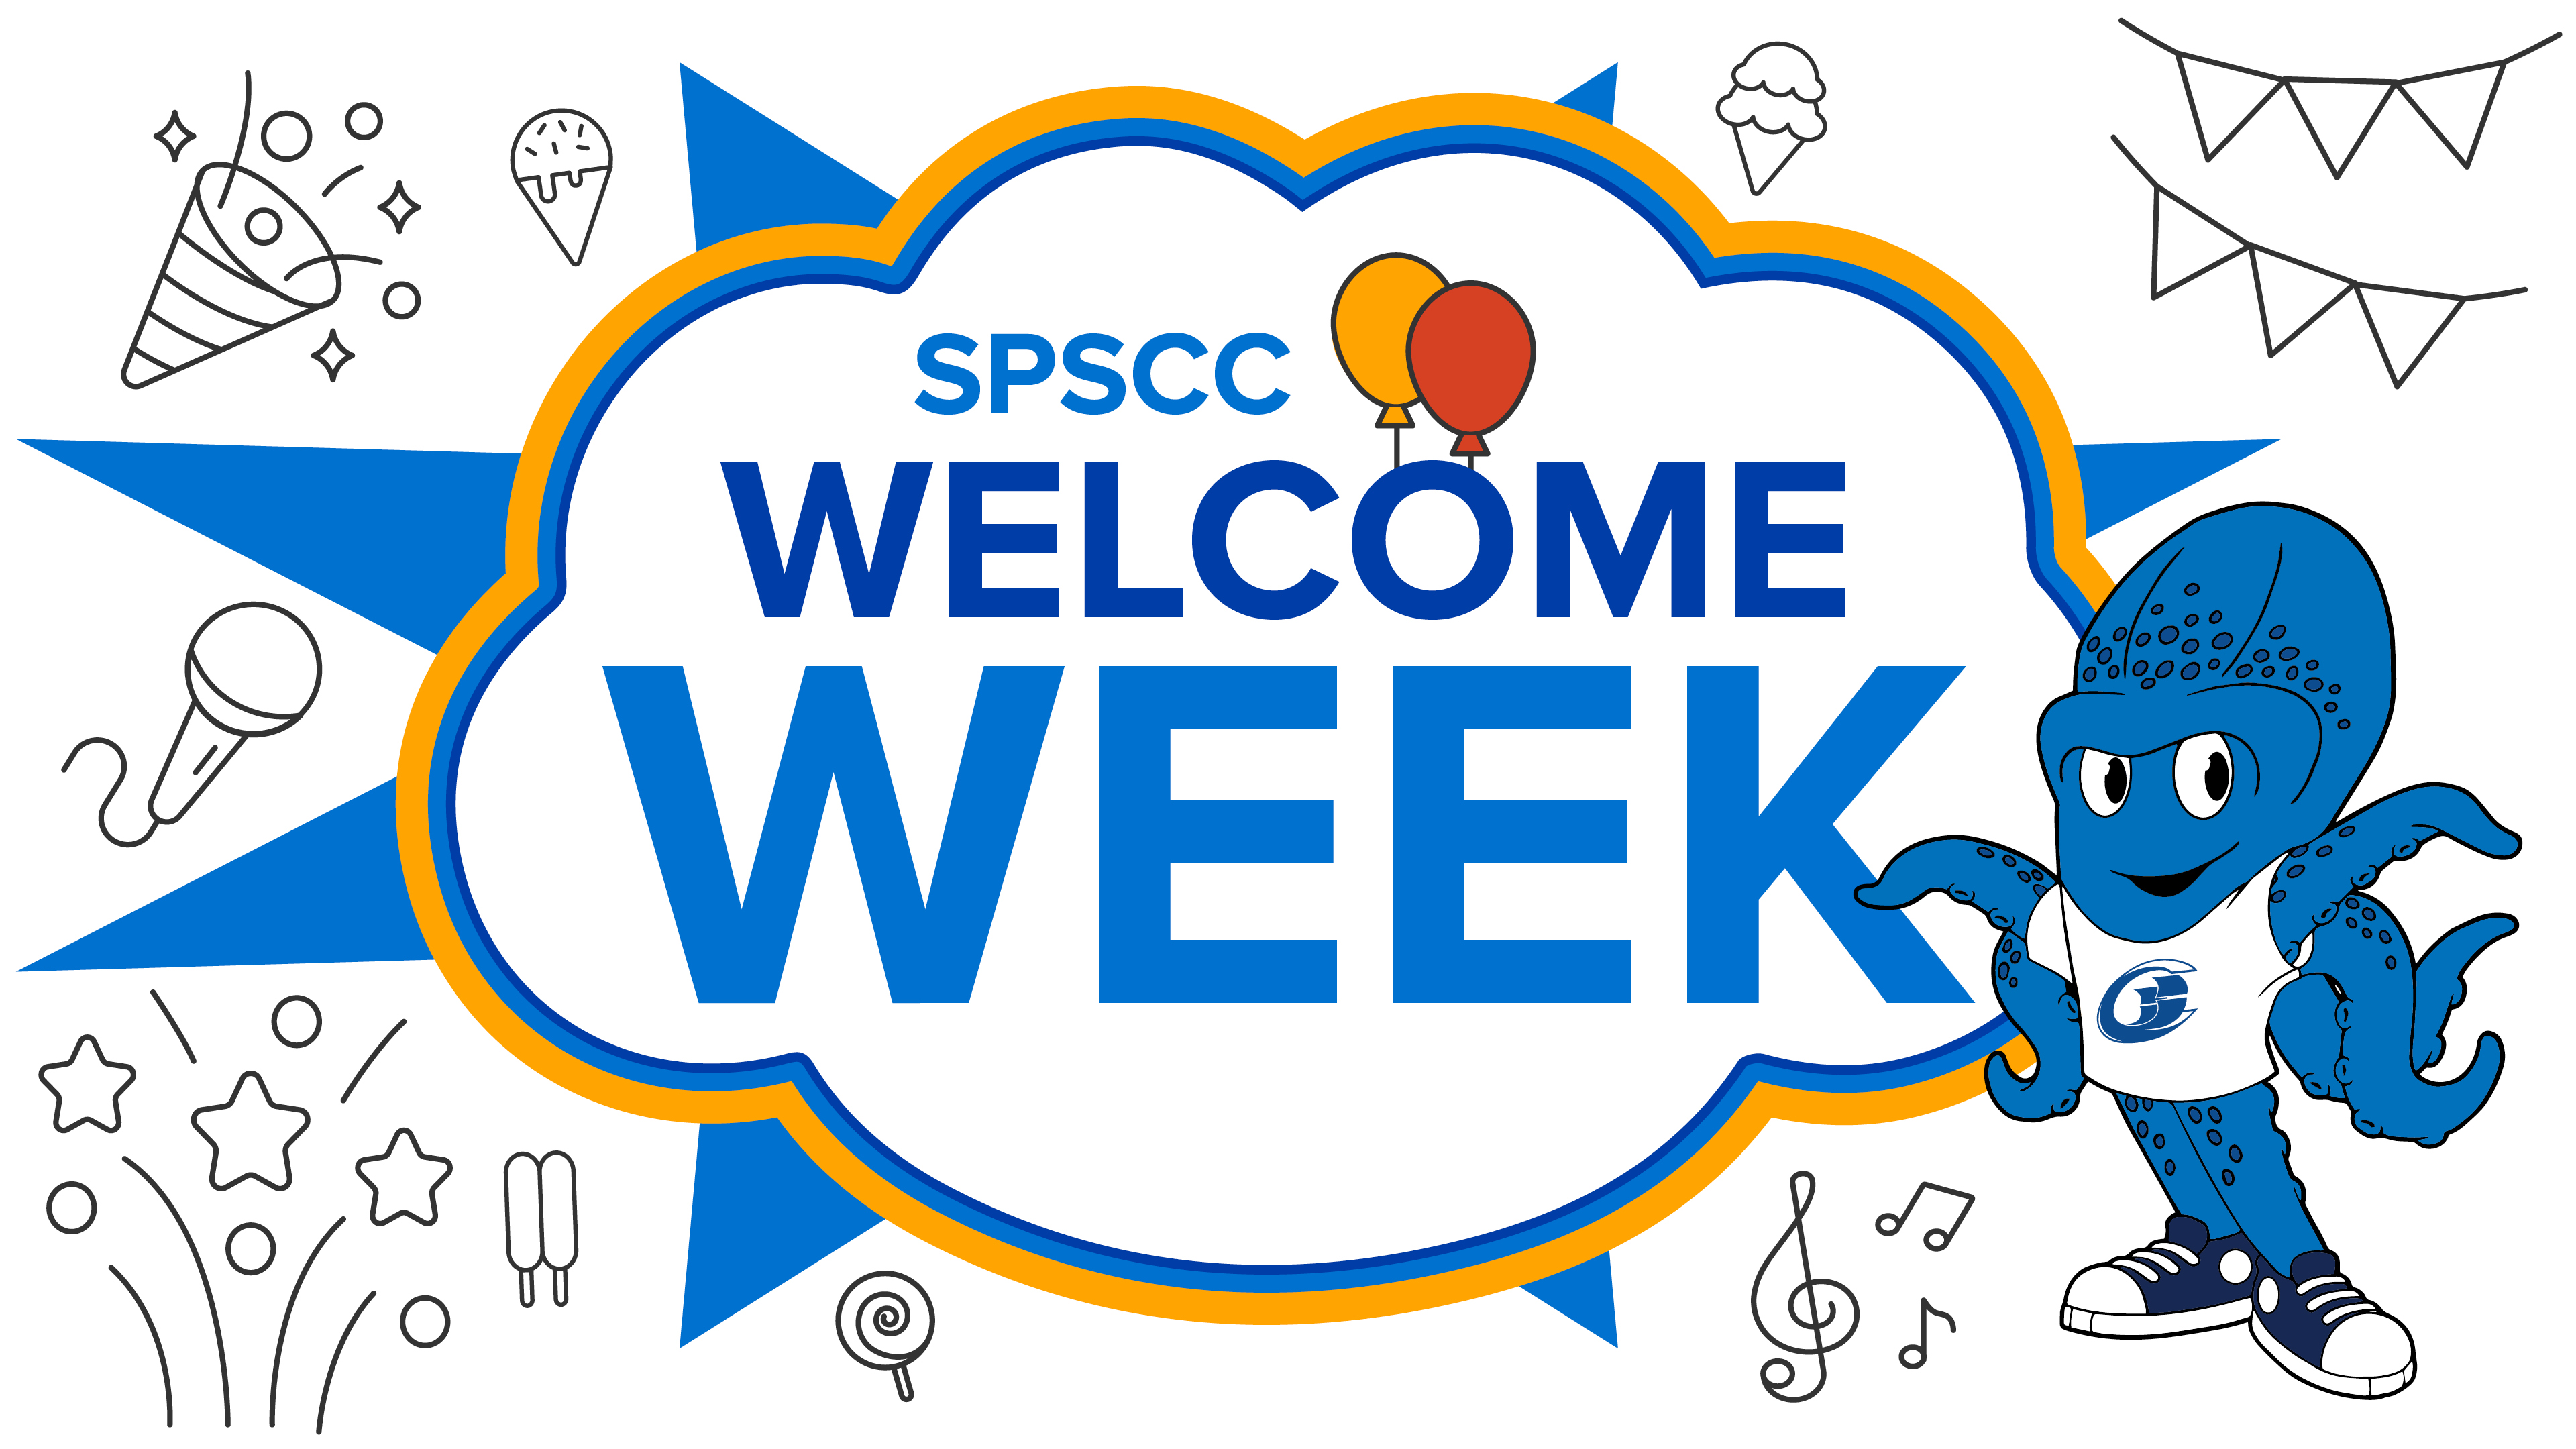 """Graphic stating """"SPSCC welcome week"""" with graphic of Percy the Kraken, confetti, and party balloon shapes"""